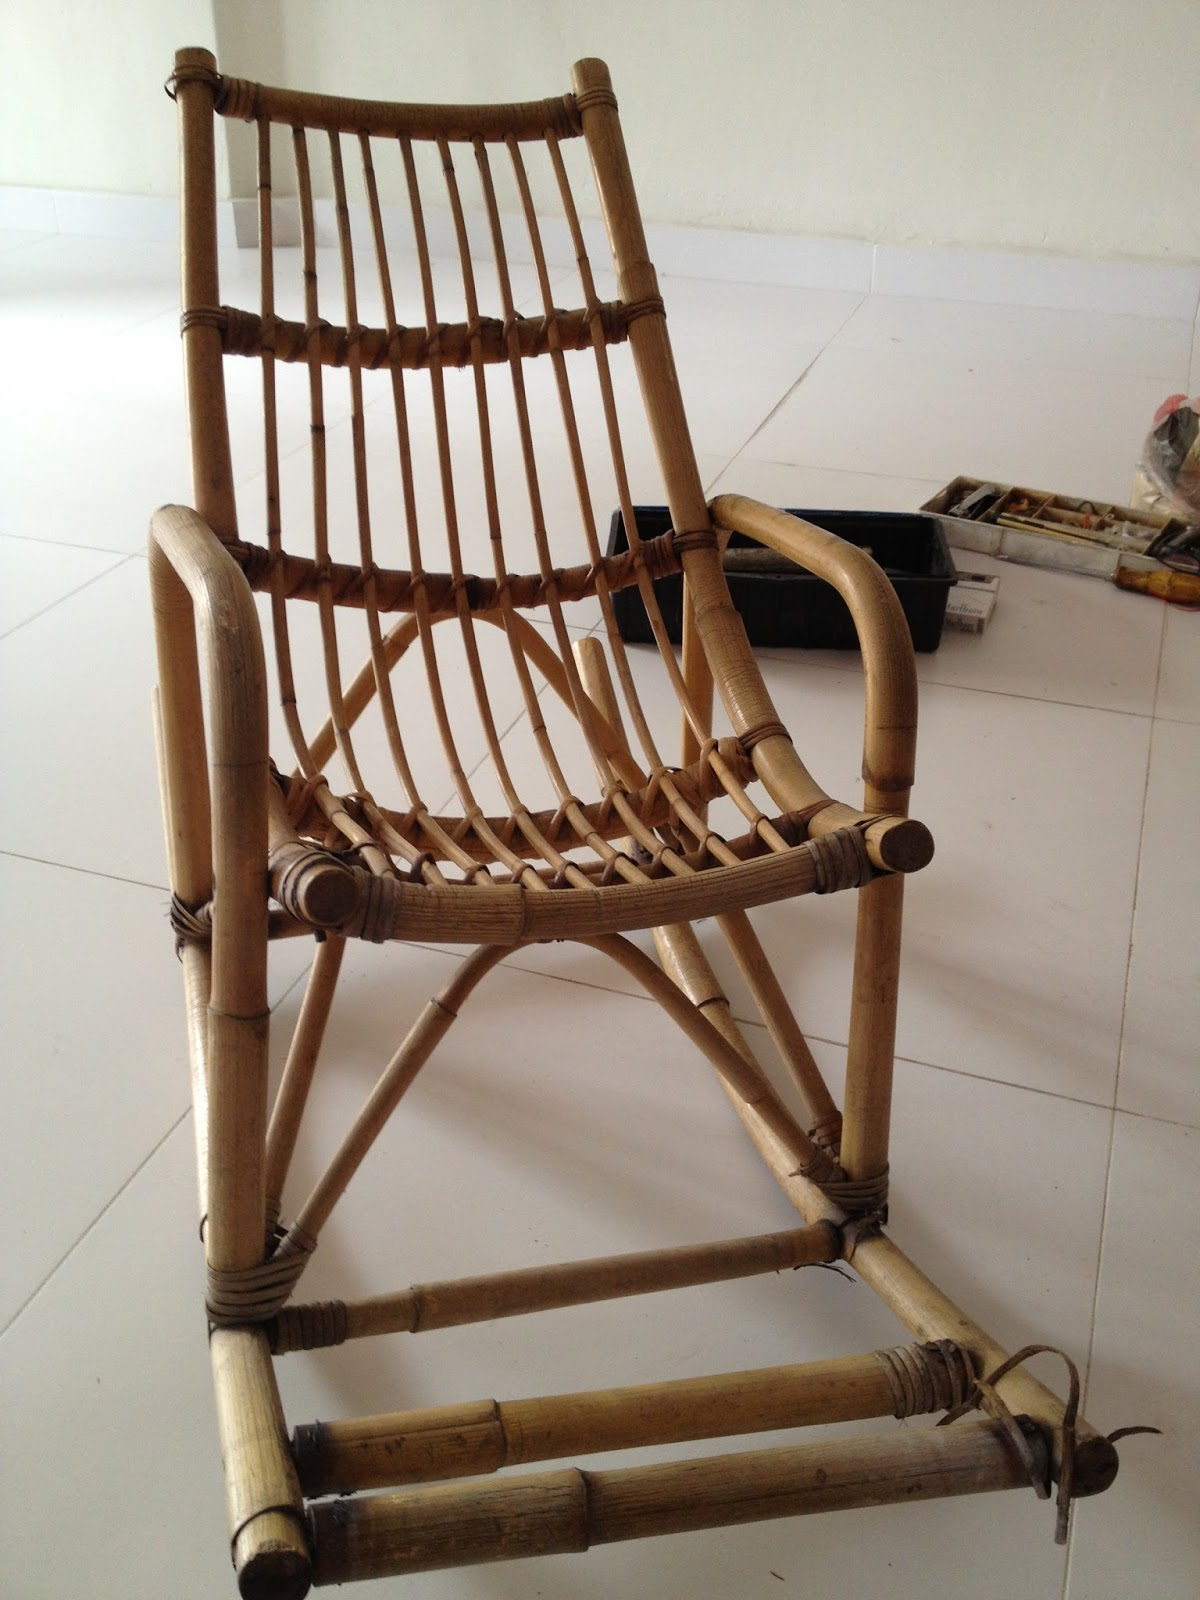 Infant Rocking Chair Adirondack Topper Our Renovation Adventures Baby